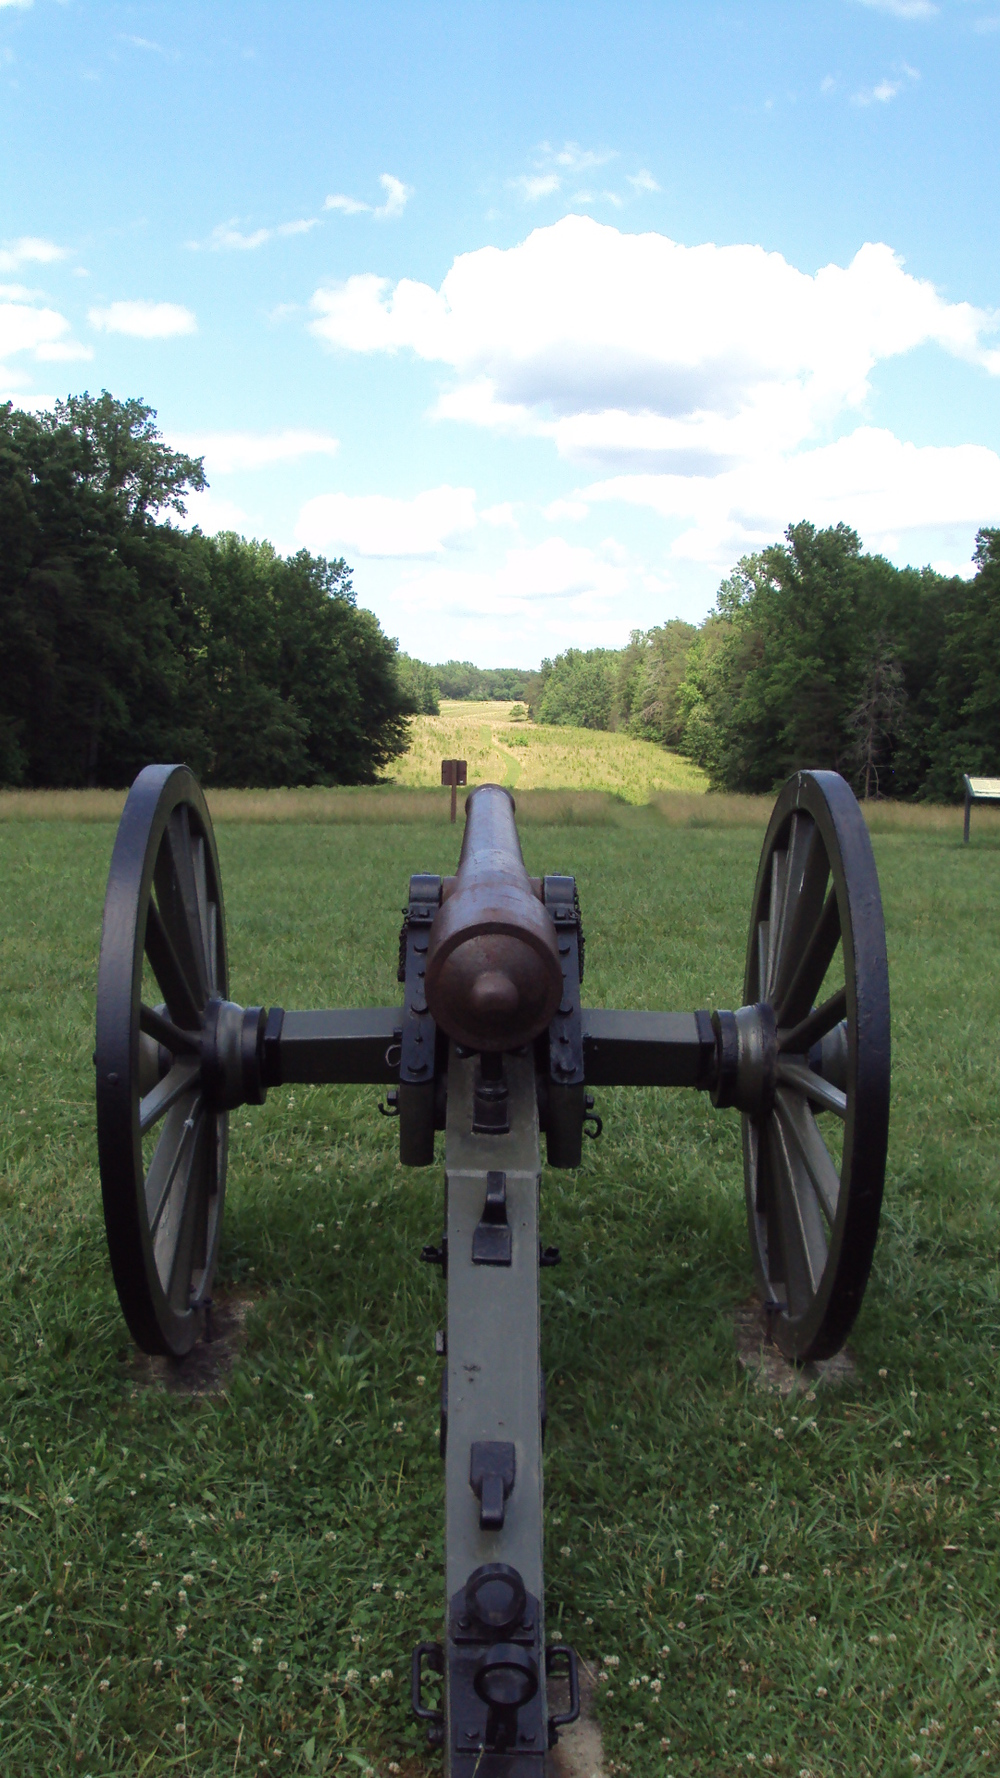 A cannon rests today atop Hazel Grove, the High Ground of the CHancellorsville Battlefield.  In the distance can be Seen Fairview, the Union artillery position on May 3rd; off to the Right of Fairview lie the remains of the Chancellor House, General Hooker's Headquarters